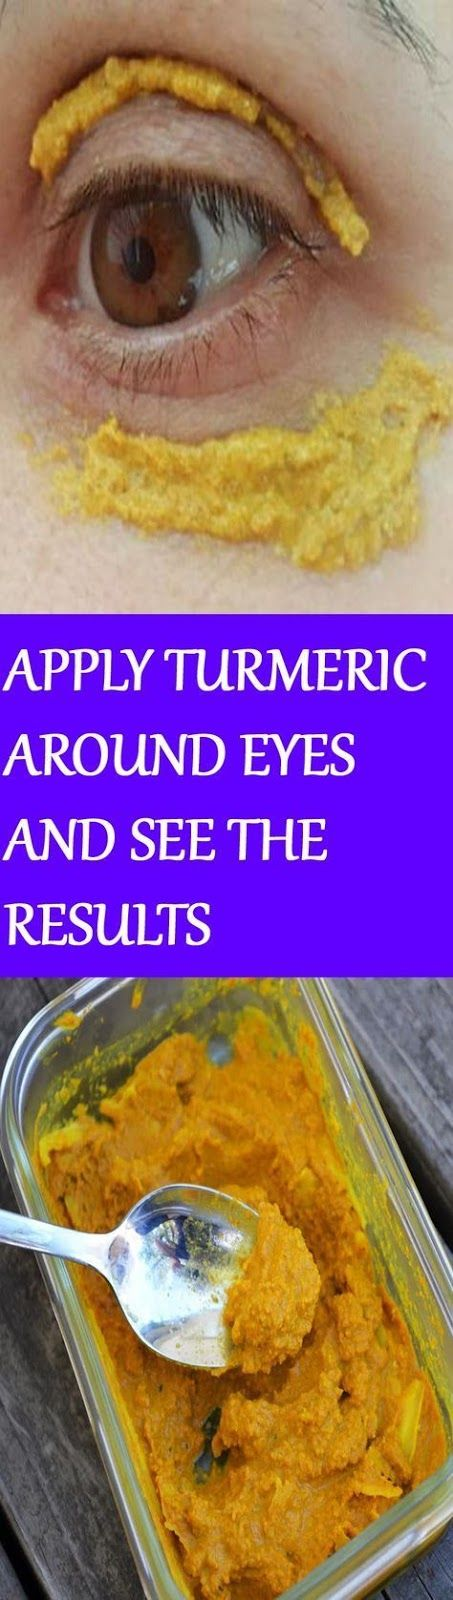 WHY YOU SHOULD APPLY A TURMERIC MASK AROUND THE EYES ?!